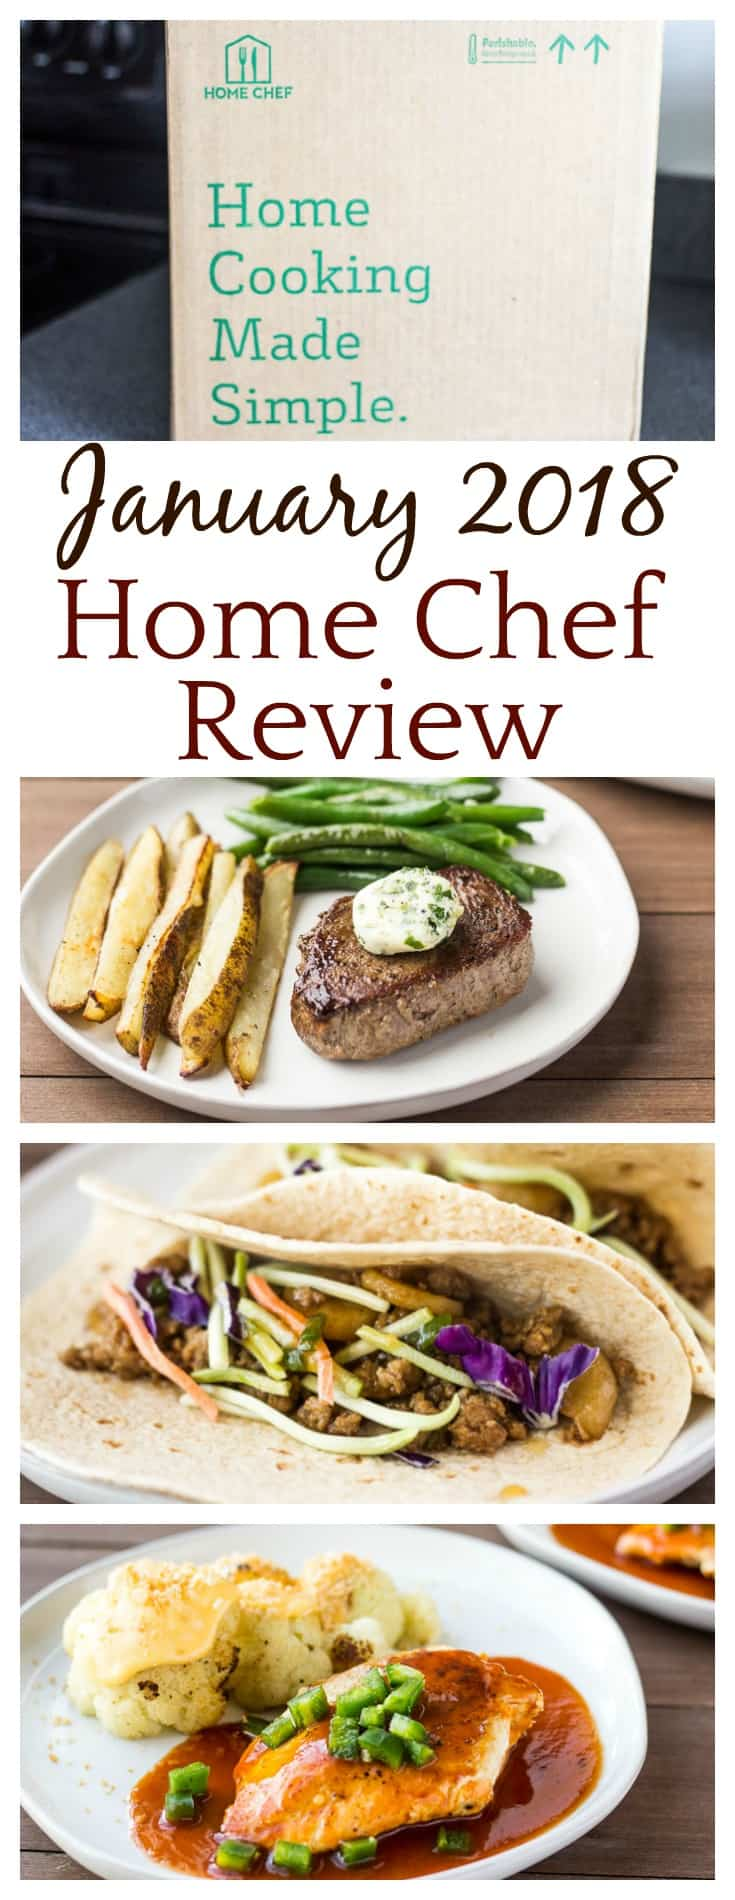 Check out the three meals and smoothie recipe I received in this January 2018 Home Chef Review! Included is also a coupon for $30 off of your first order!   #homechef #mealkits #mealkitreviews #foodsubscriptionboxes #subscriptionboxes #foodie